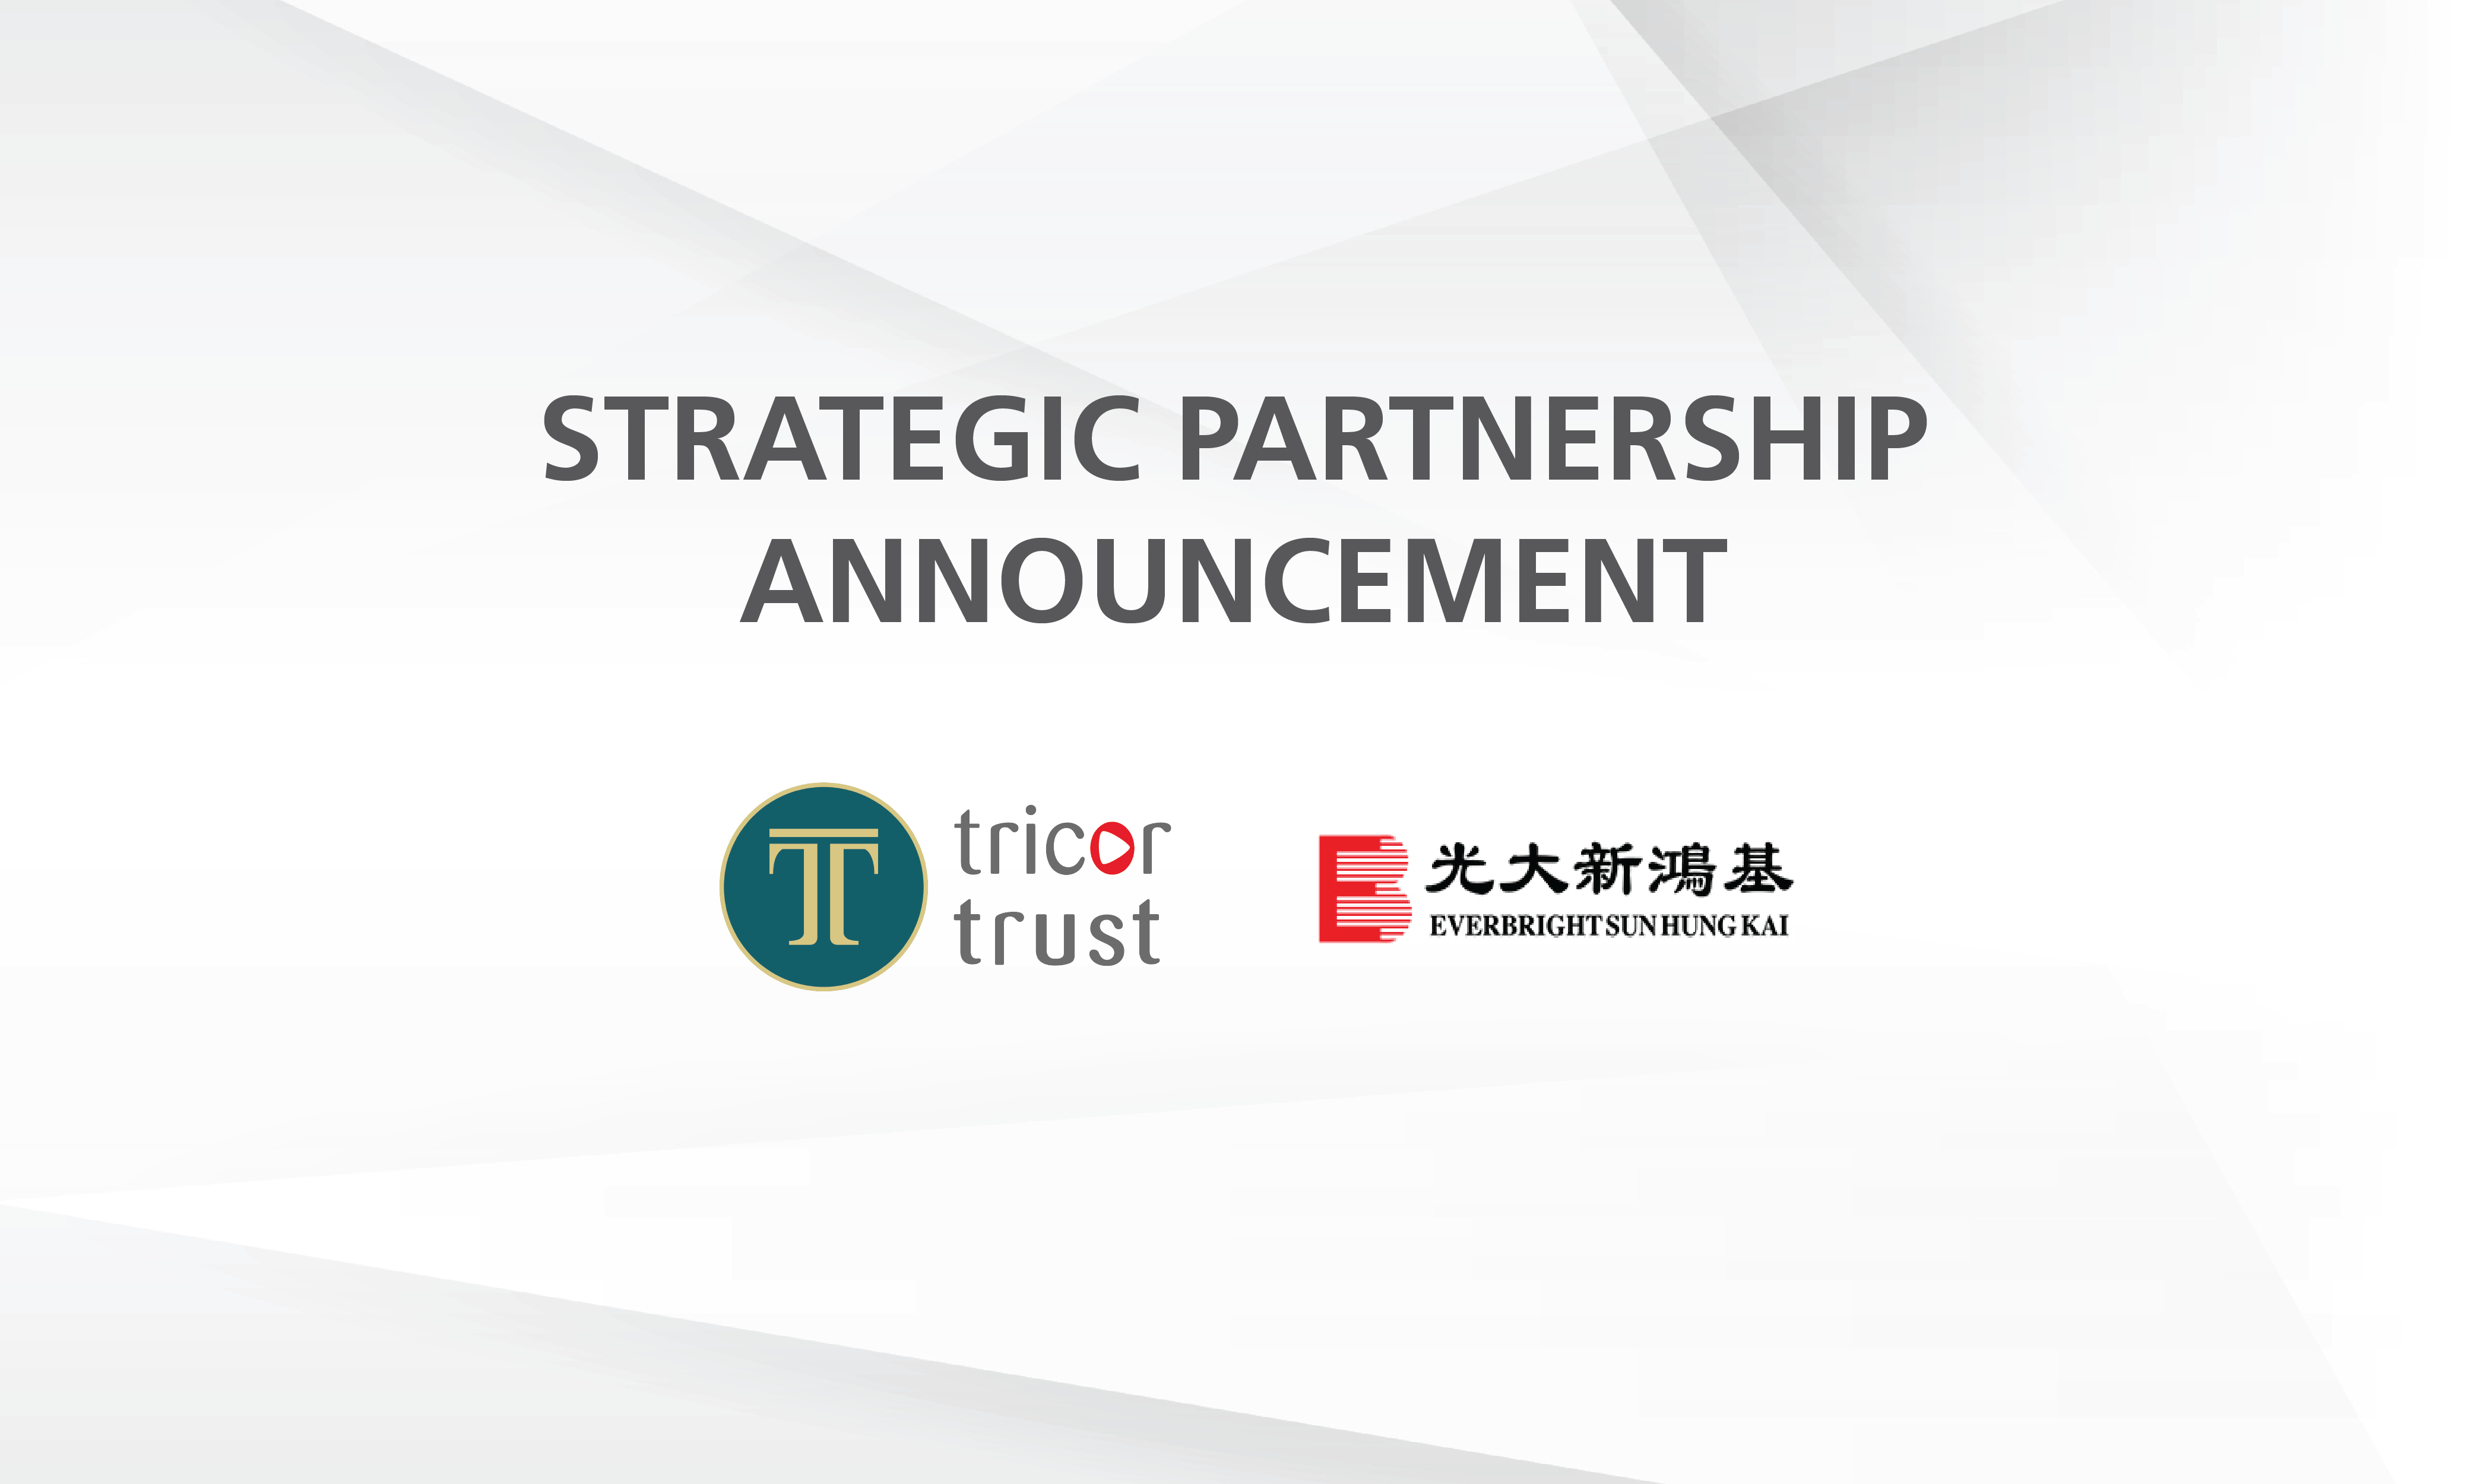 Tricor Trust and Everbright Sun Hung Kai Announce Strategic Partnership To Offer HNWIs Integrated Trust and Wealth Management Solutions